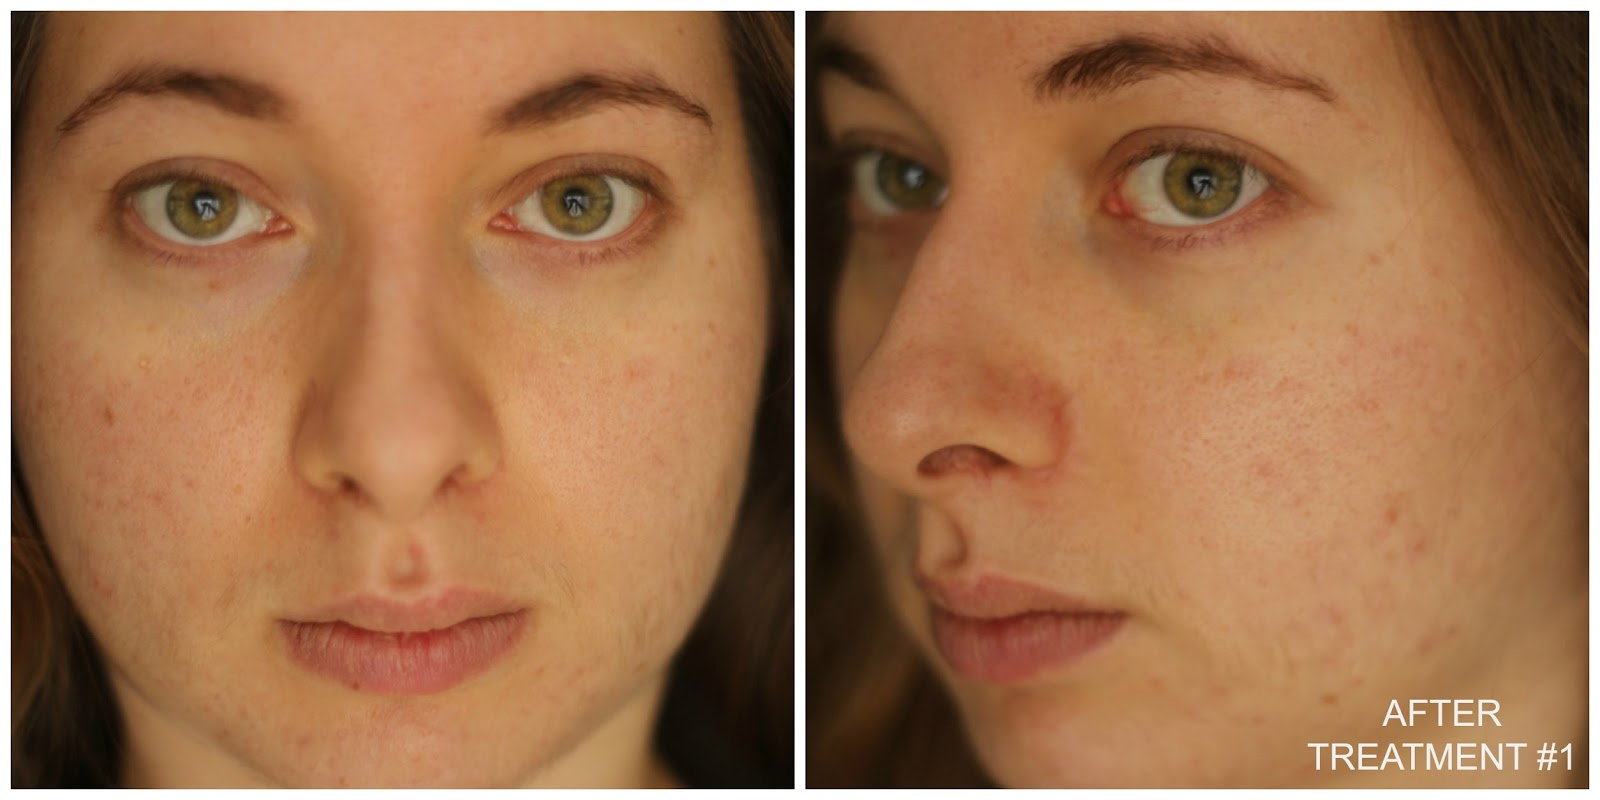 My First Chemical Peel Experience With Epiderma